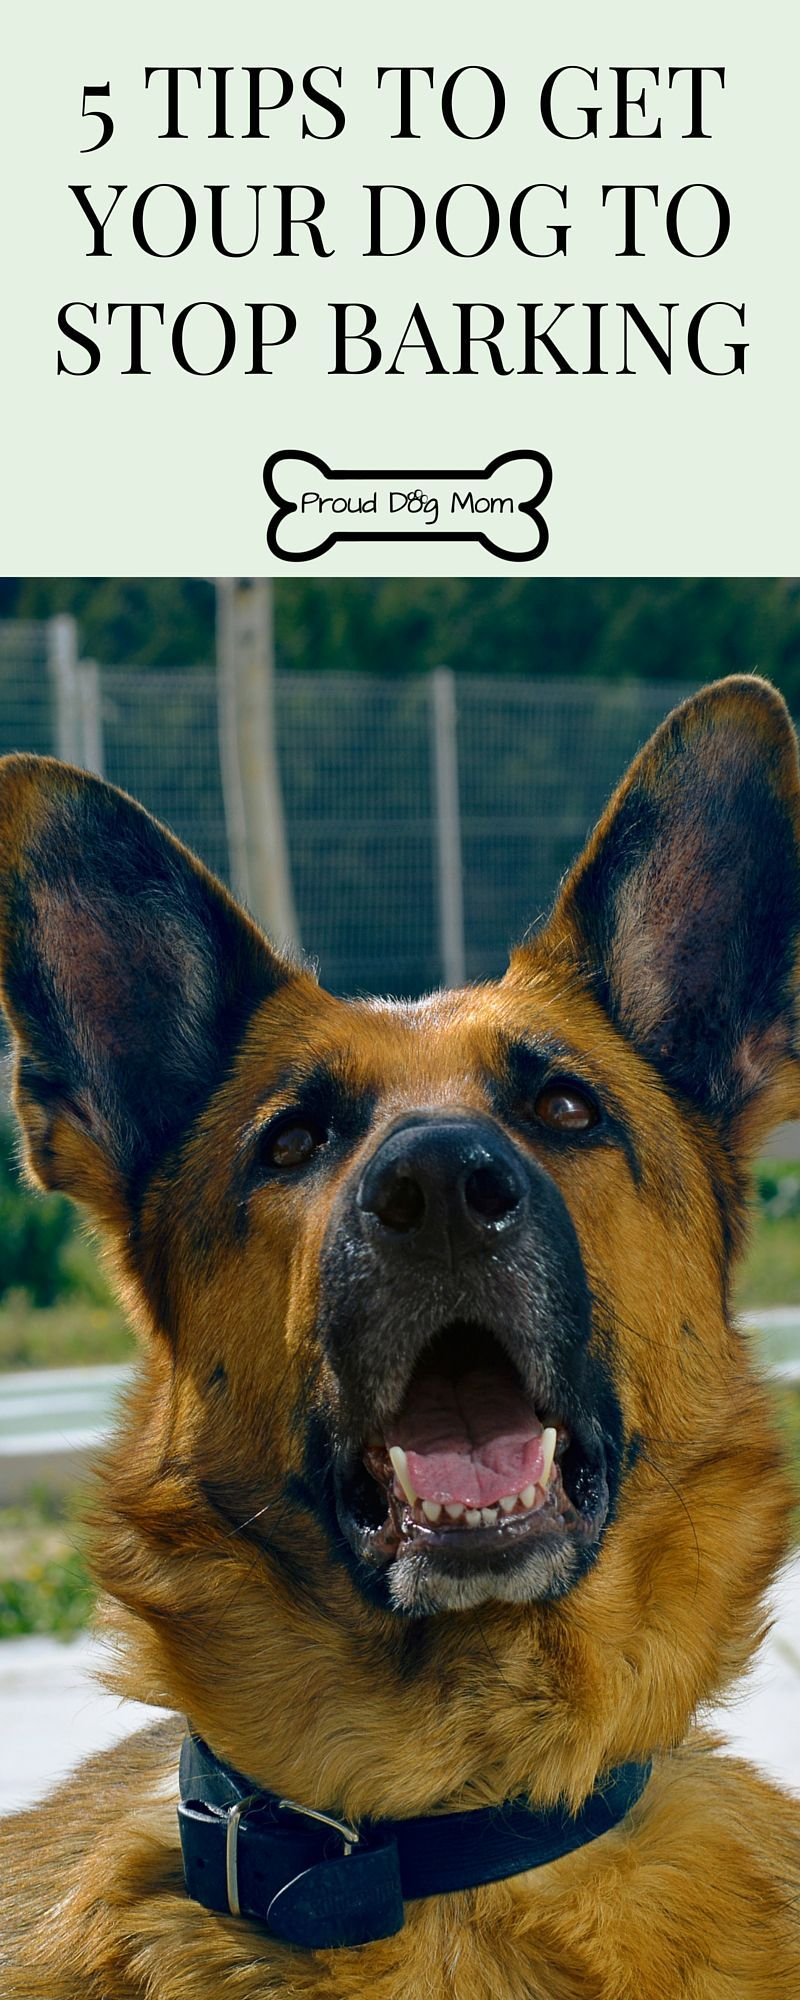 5 Tips To Get Your Dog To Stop Barking Dogs Dog Training Stop